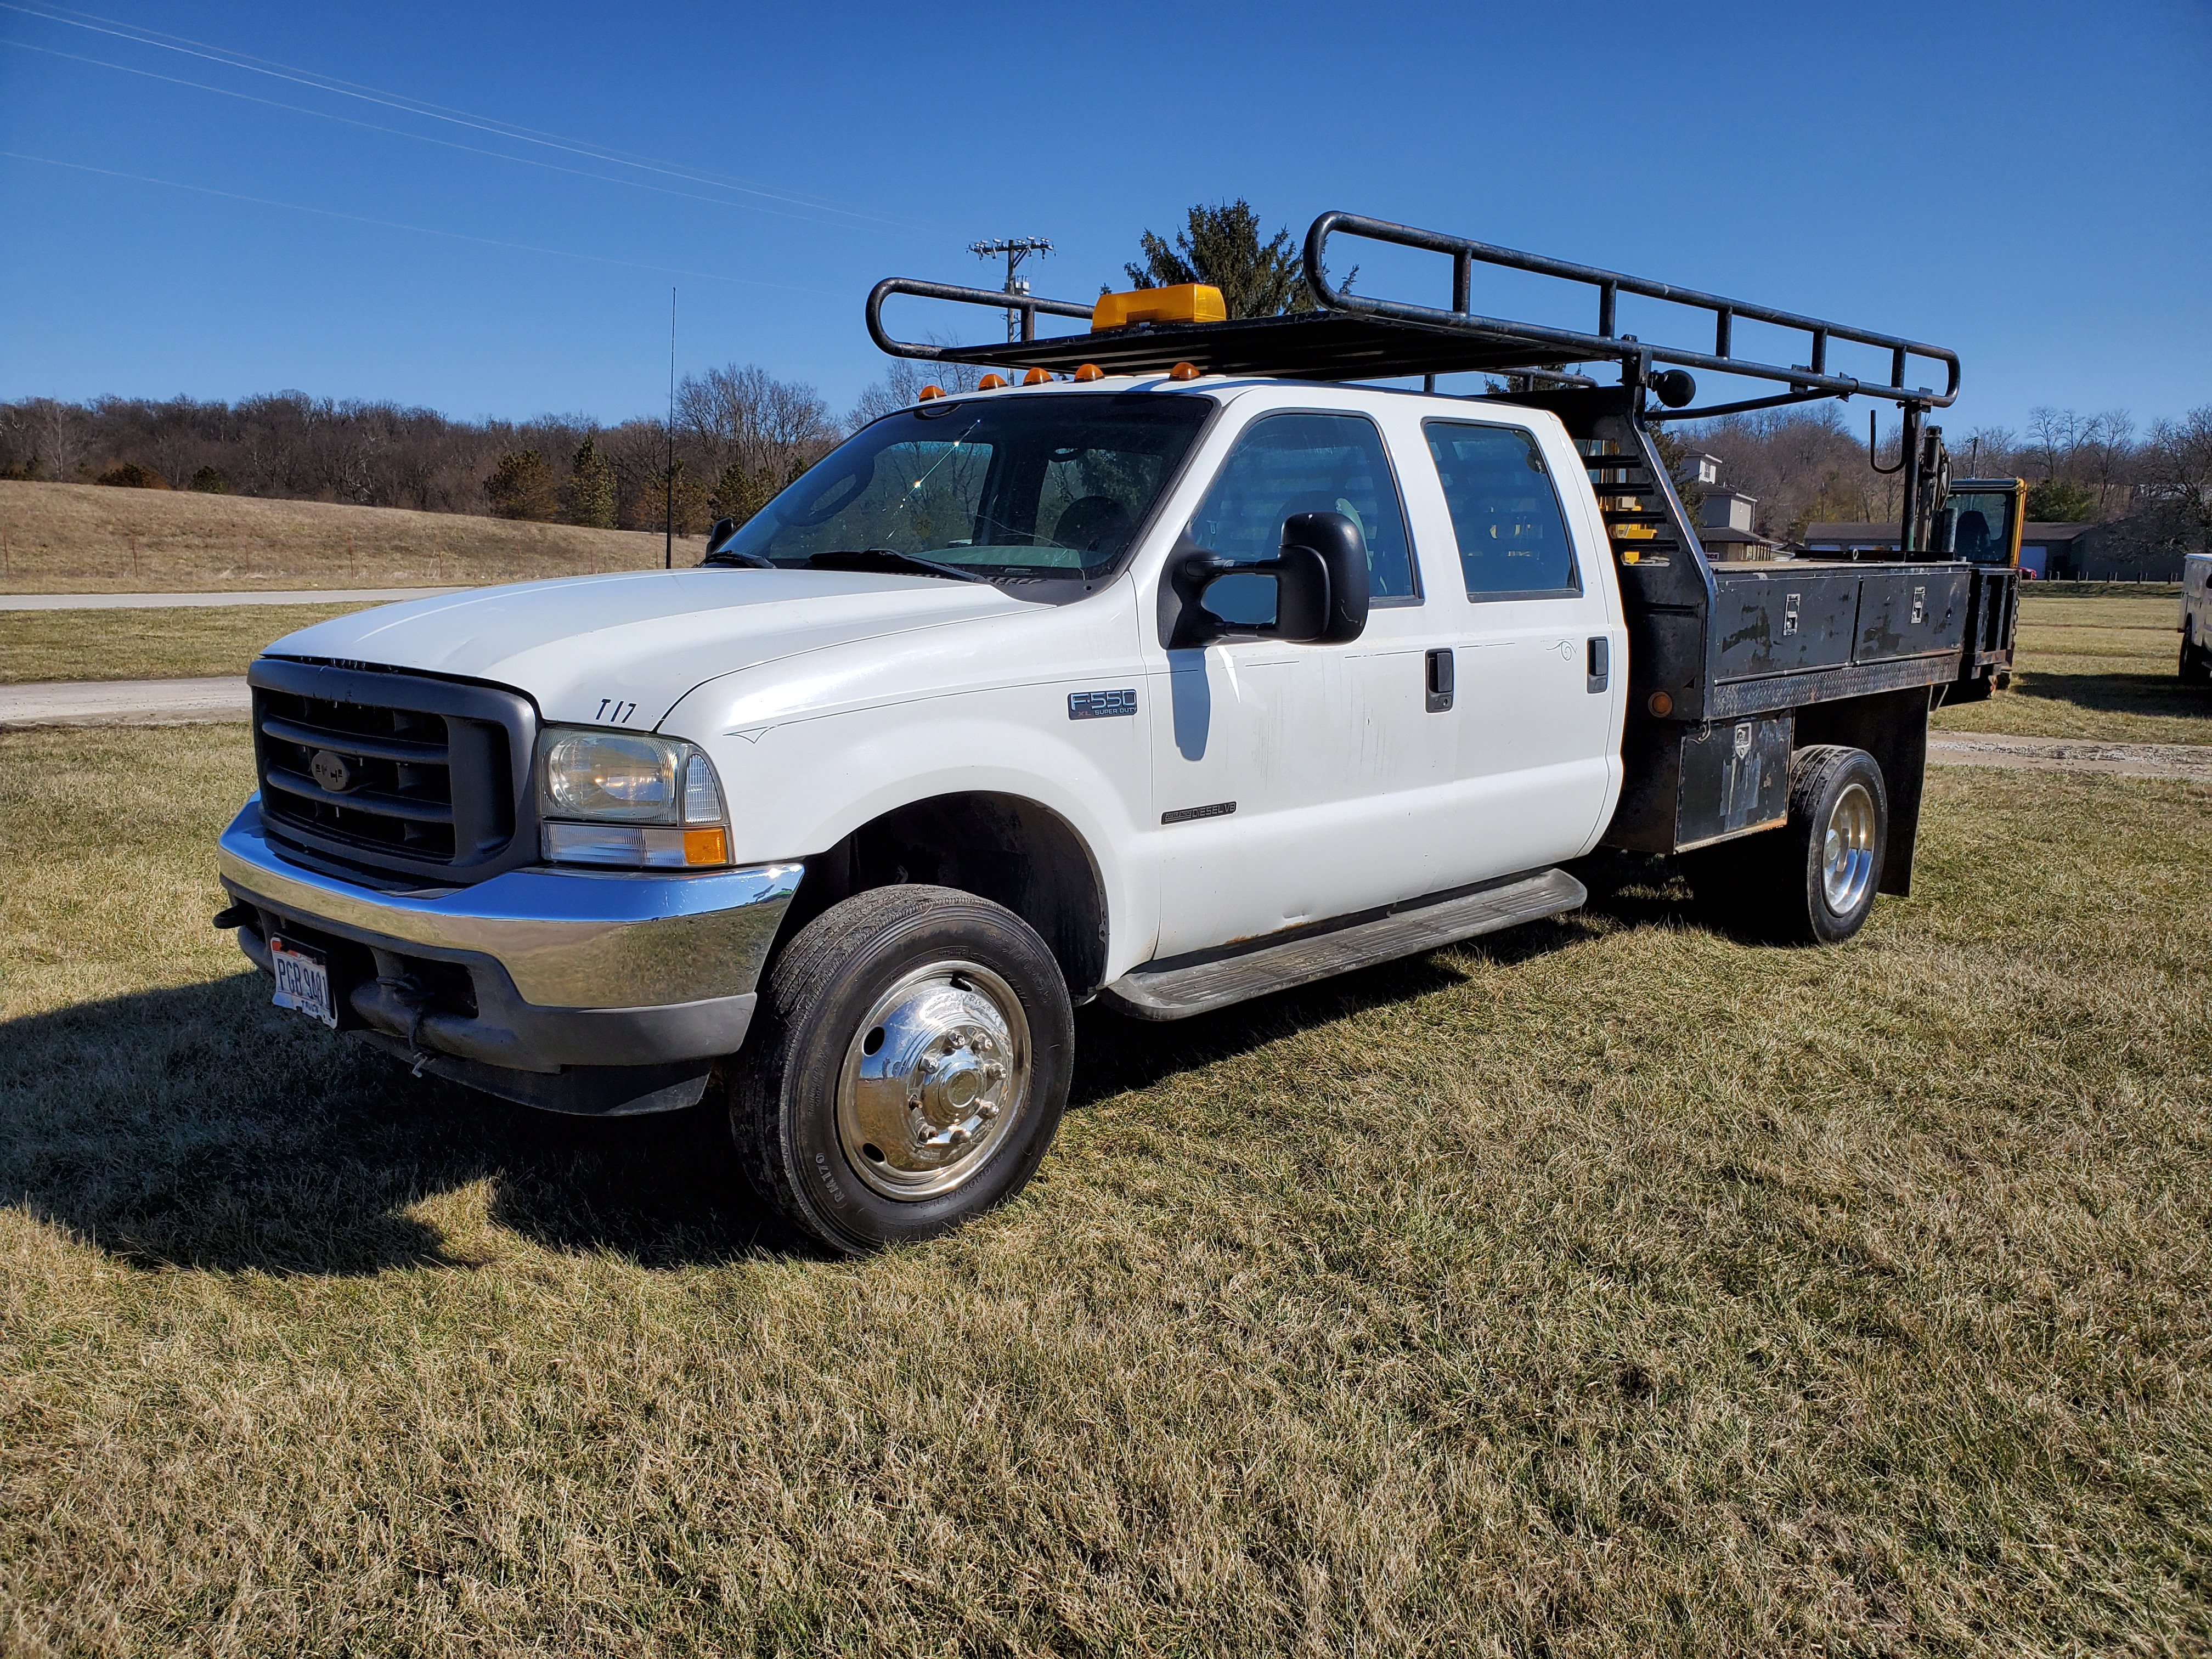 2003 F550 Ford Super Duty Pickup, Automatic, 7.3 Power Stroke Diesel, 8' Foot Omaha Flatbed - Image 2 of 18